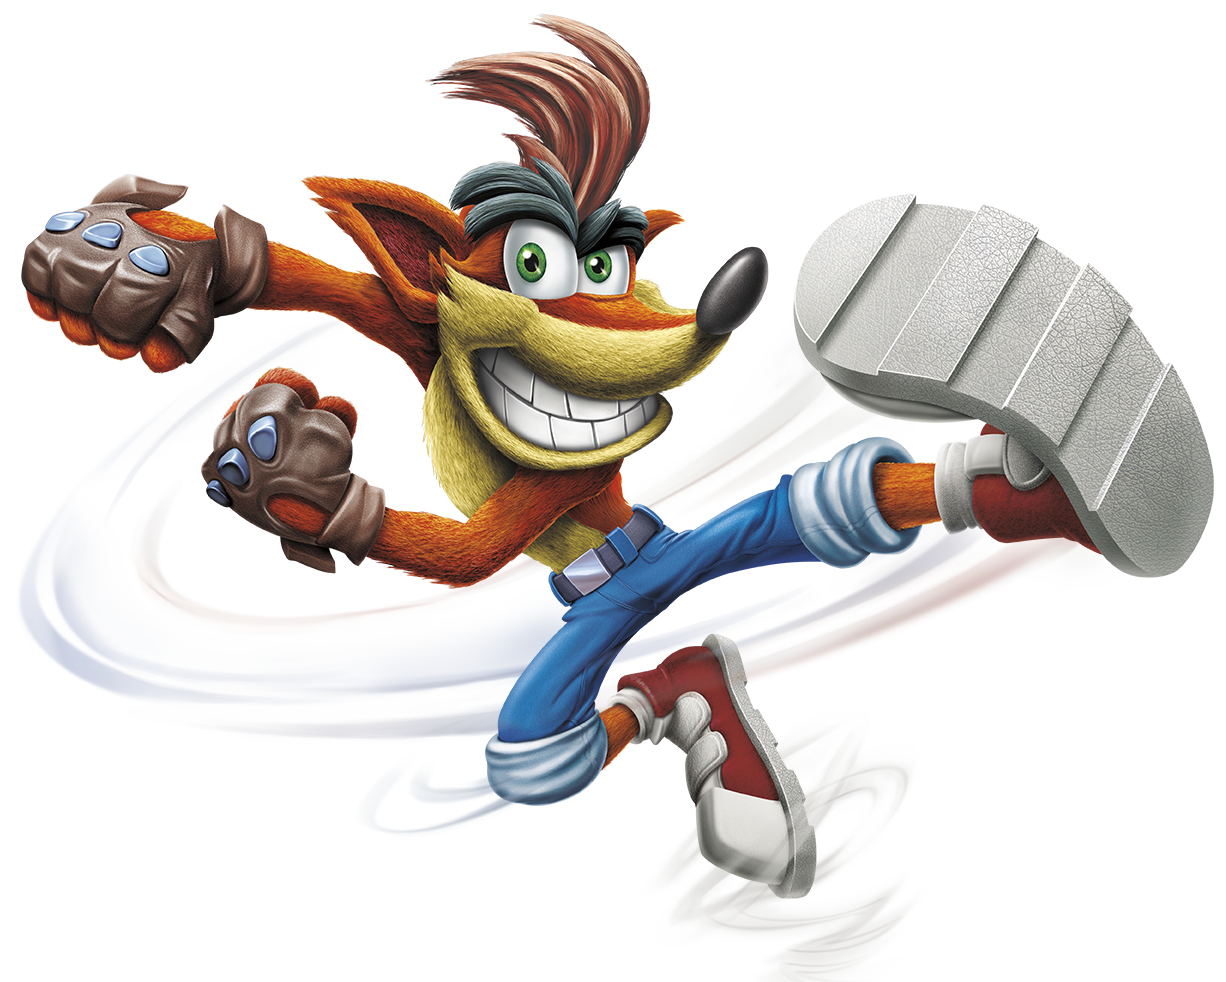 Crash bandicoot ps4 clipart picture library Crash bandicoot multiplayer clipart images gallery for free download ... picture library